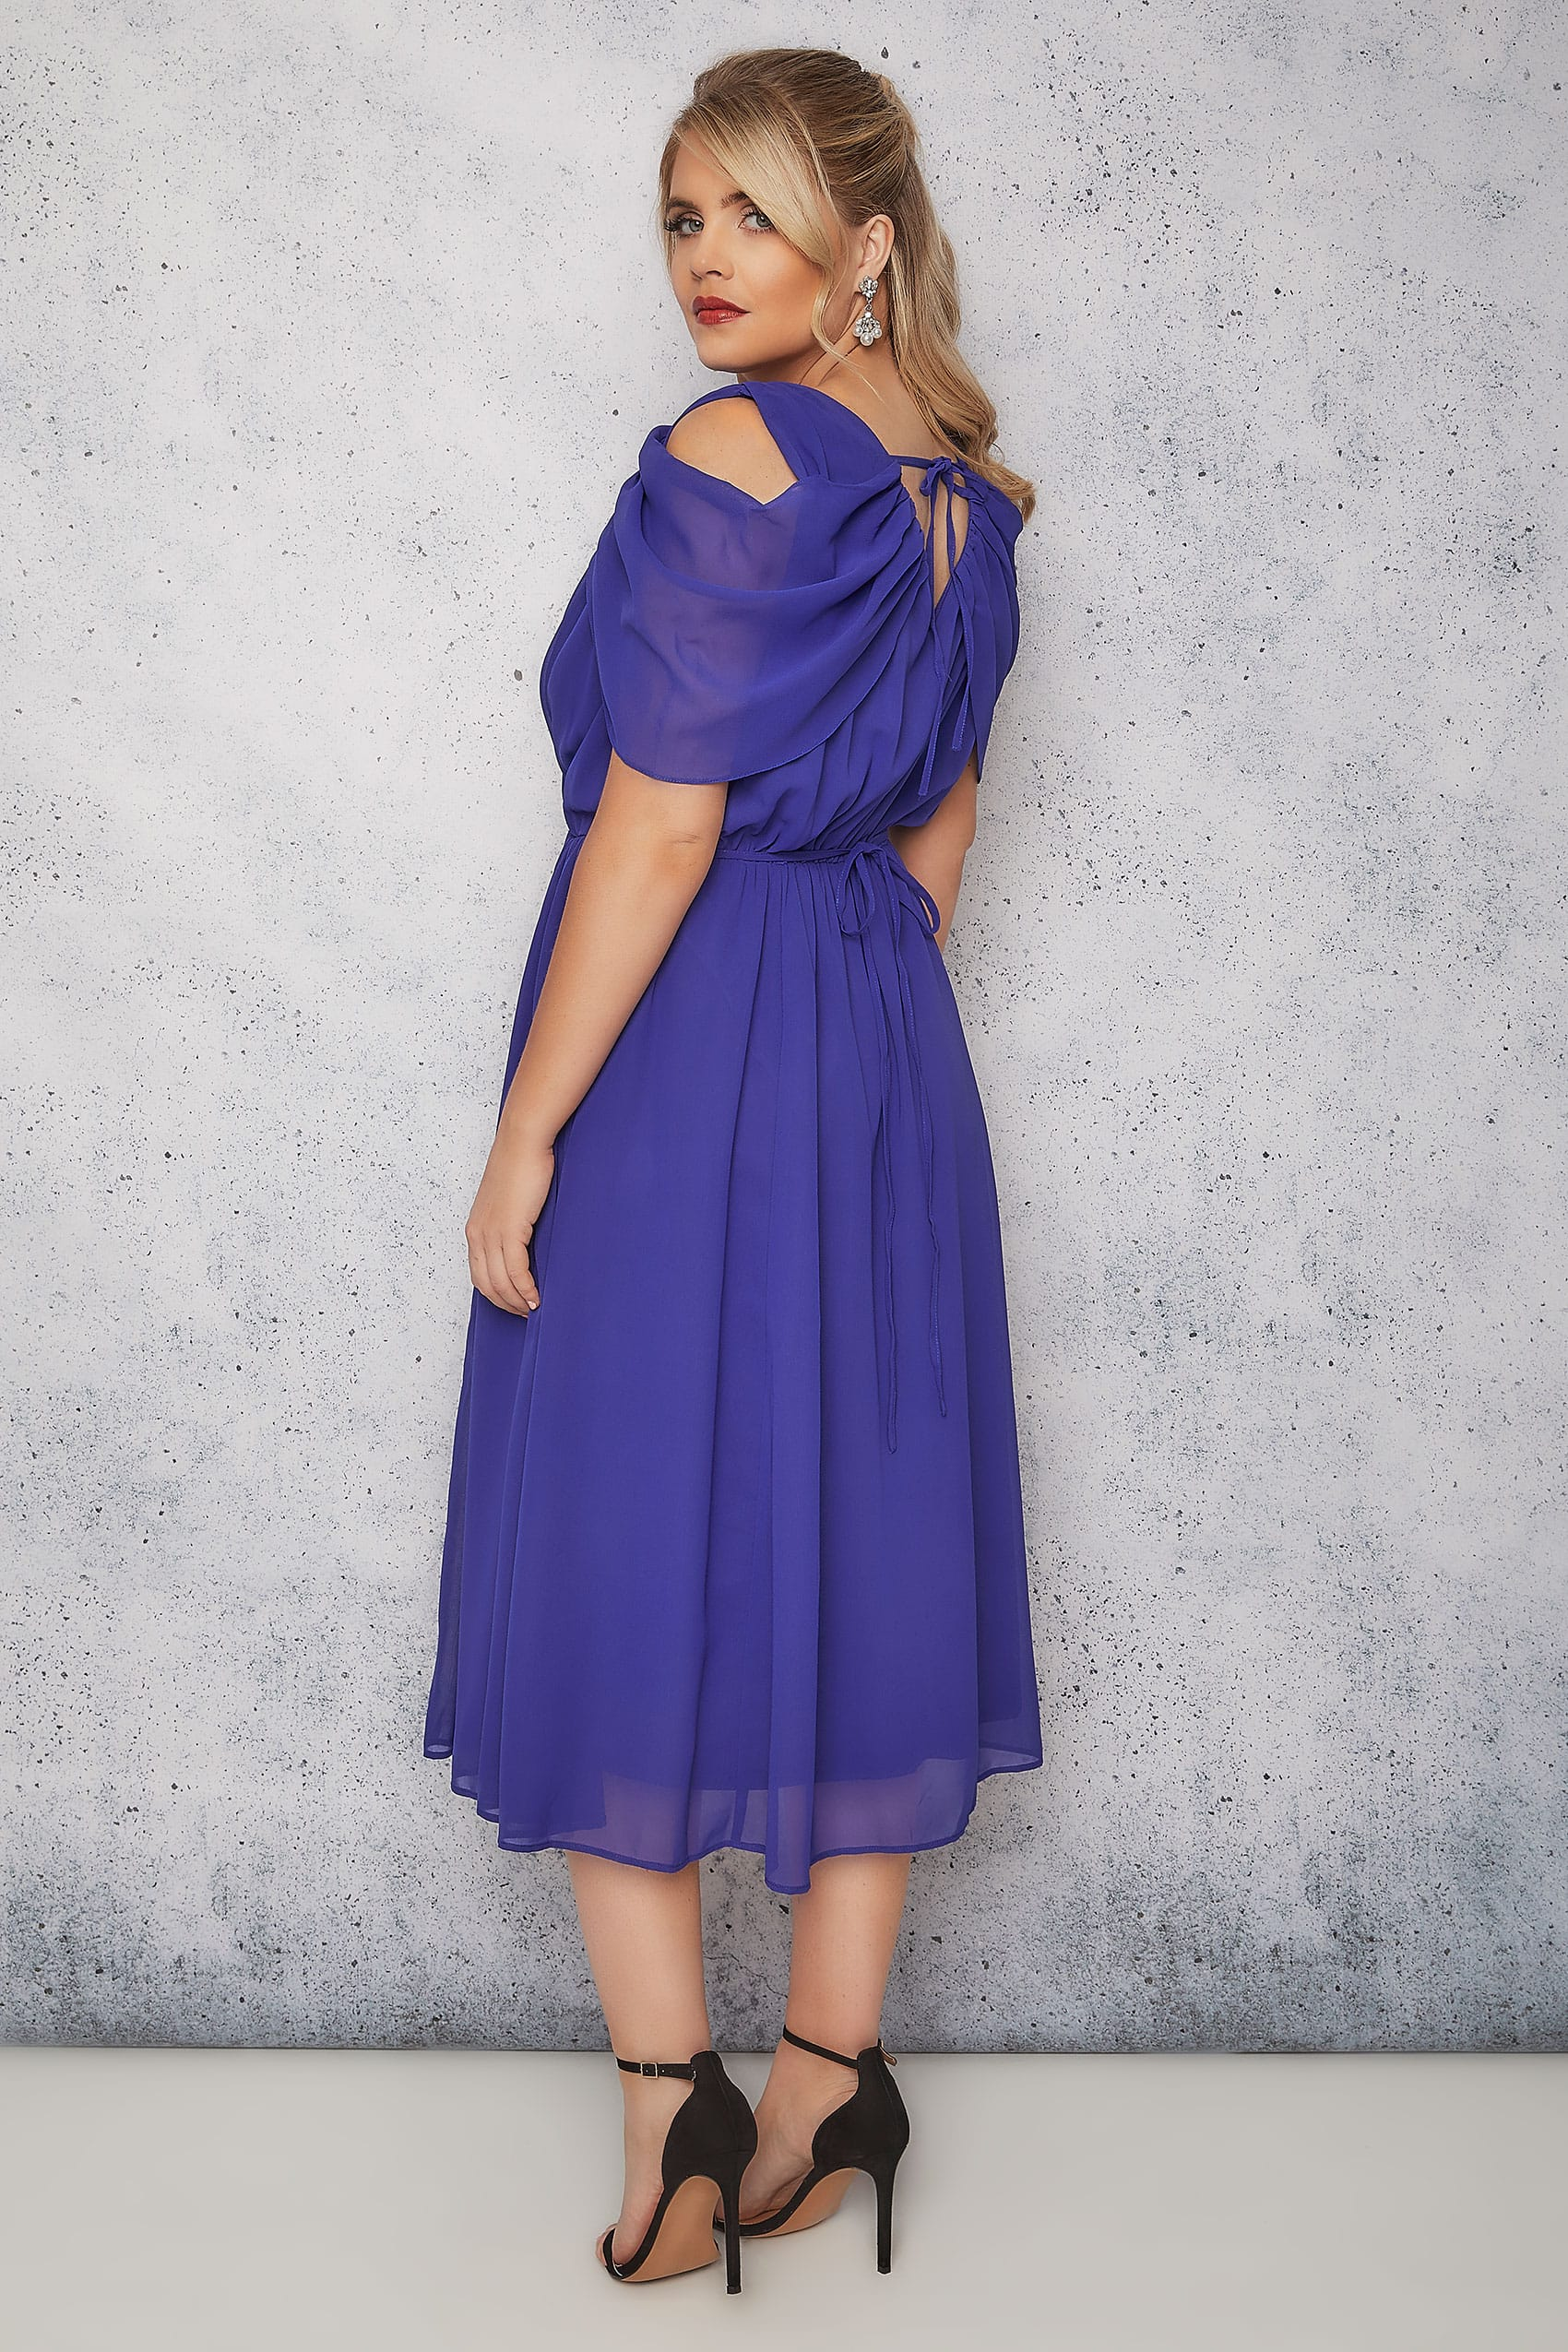 Chiffon midi dress 16